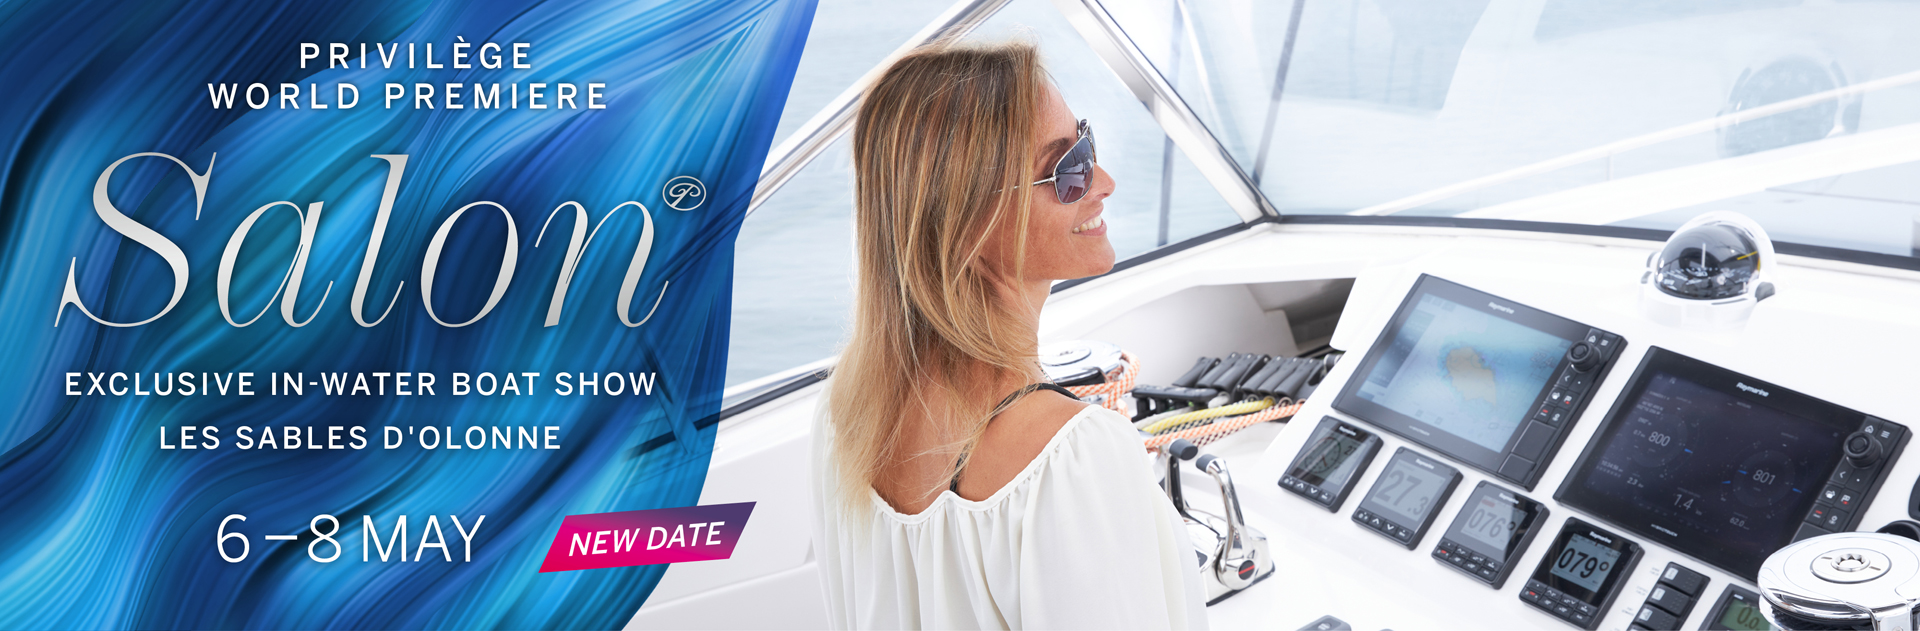 Book an appointment to your exclusive luxury catamaran boat show